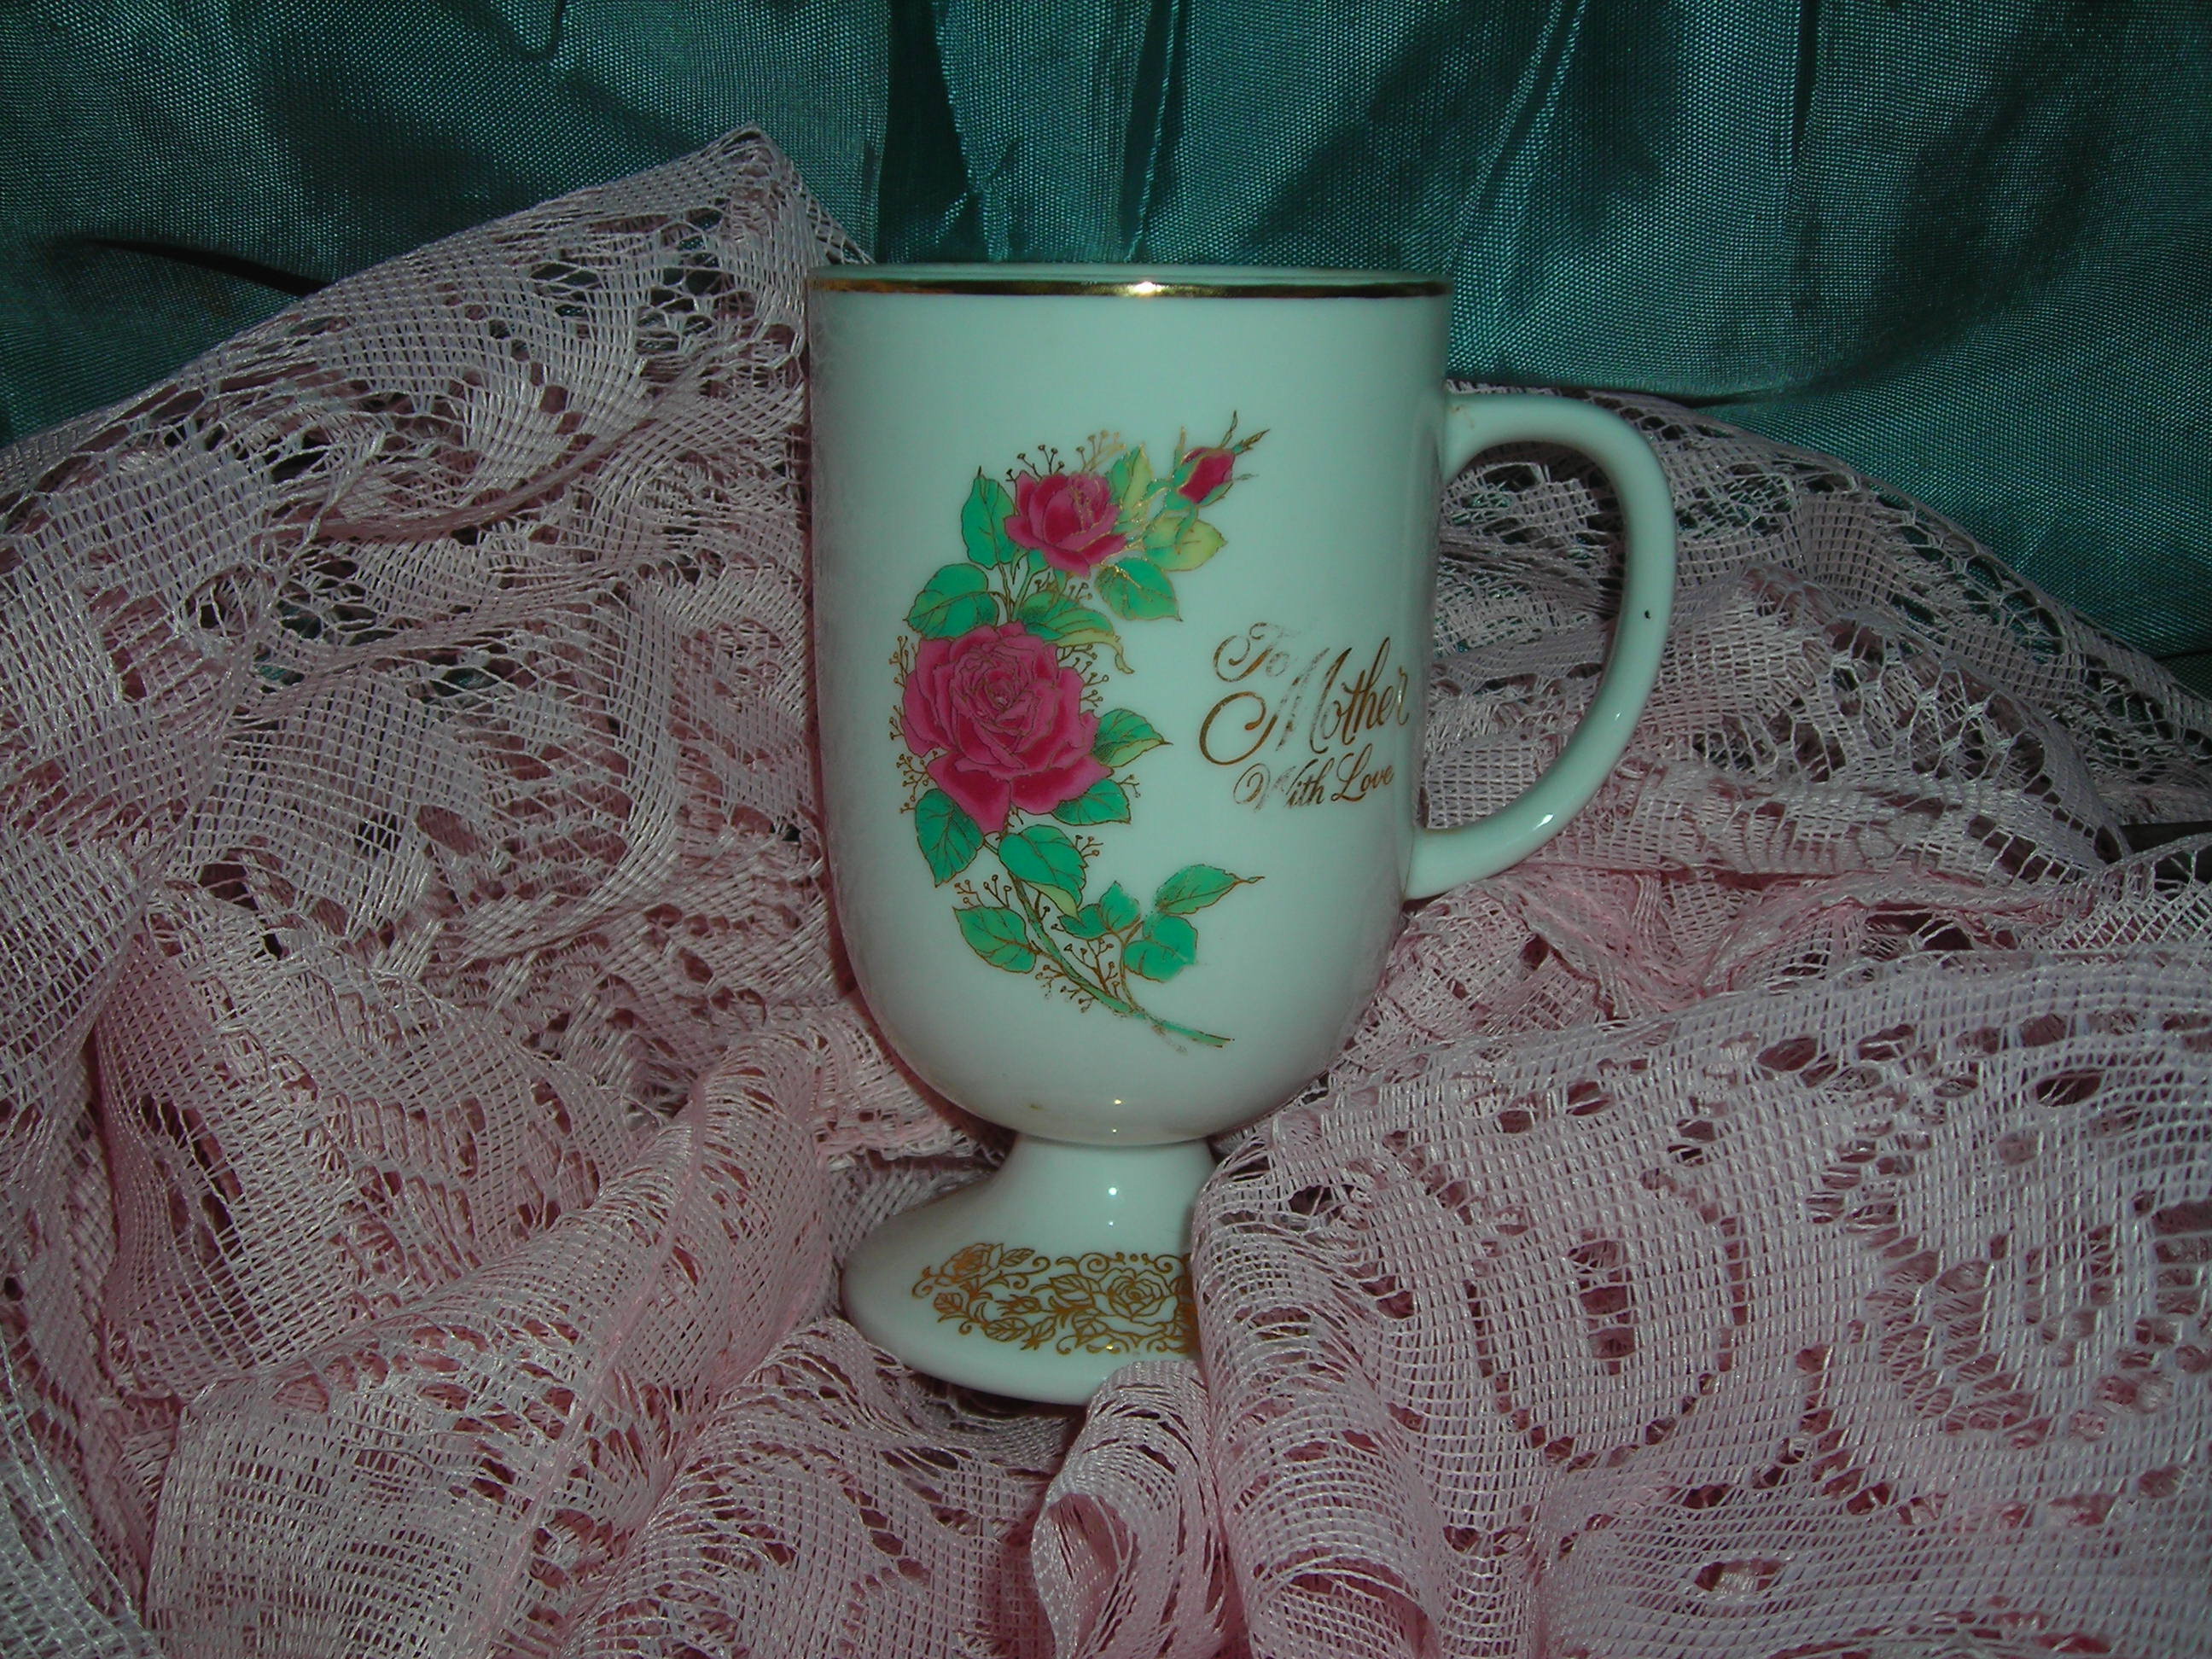 an old mother's day cup ... couldn't resist the roses